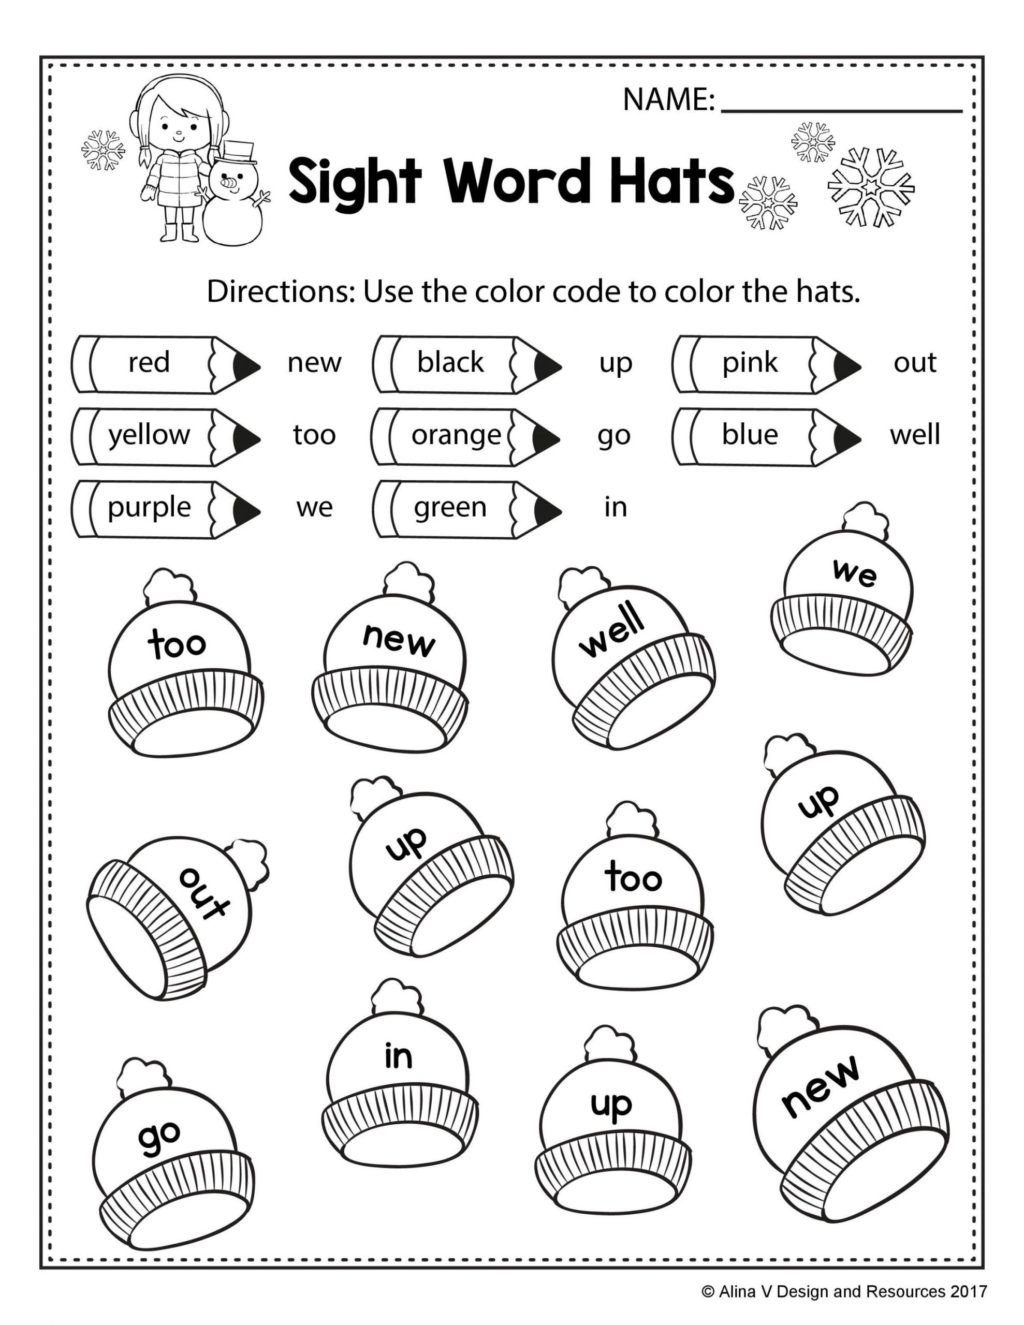 Bar Model Worksheets 2nd Grade Worksheet Second Gradeddition Worksheets Worksheet 2nd